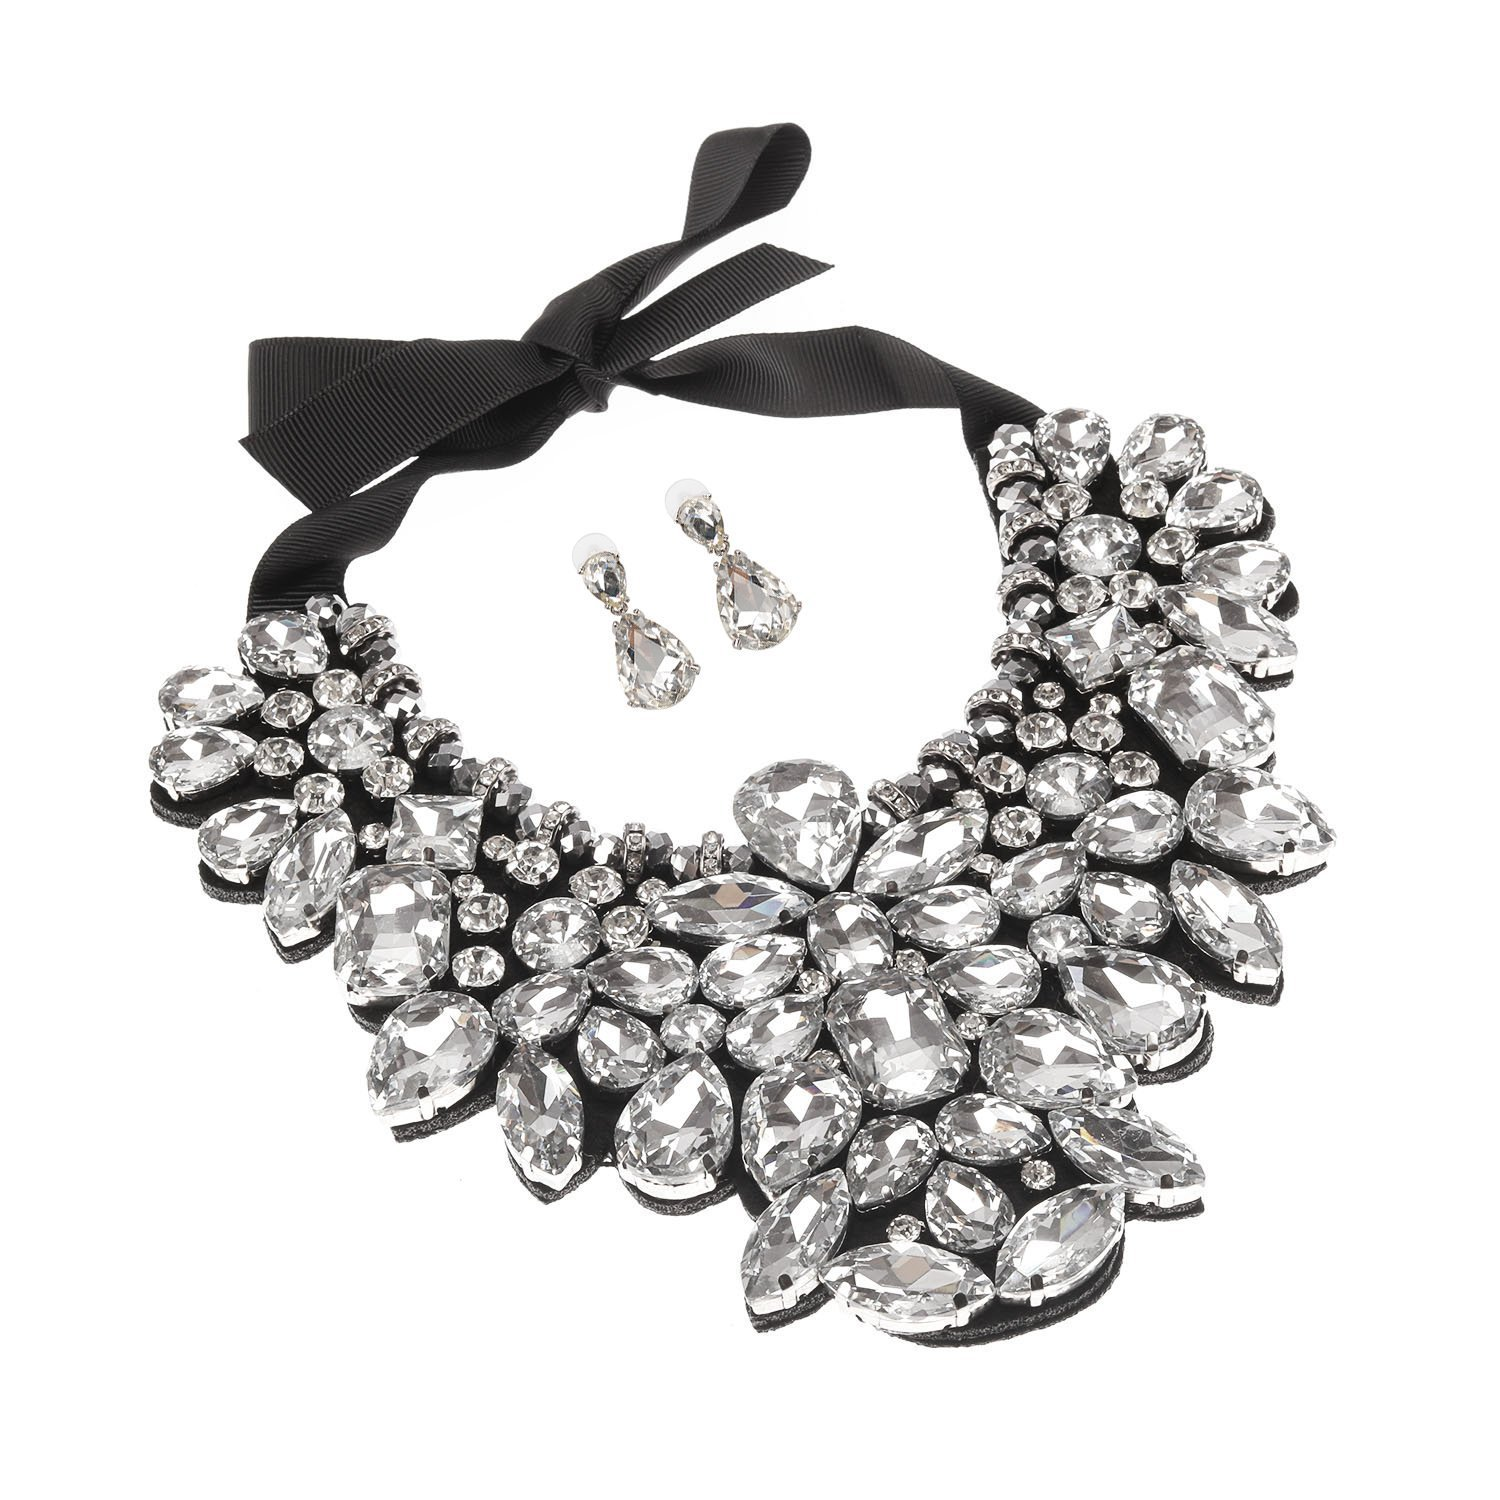 Holylove White Costume Statement Necklace with Earrings ...